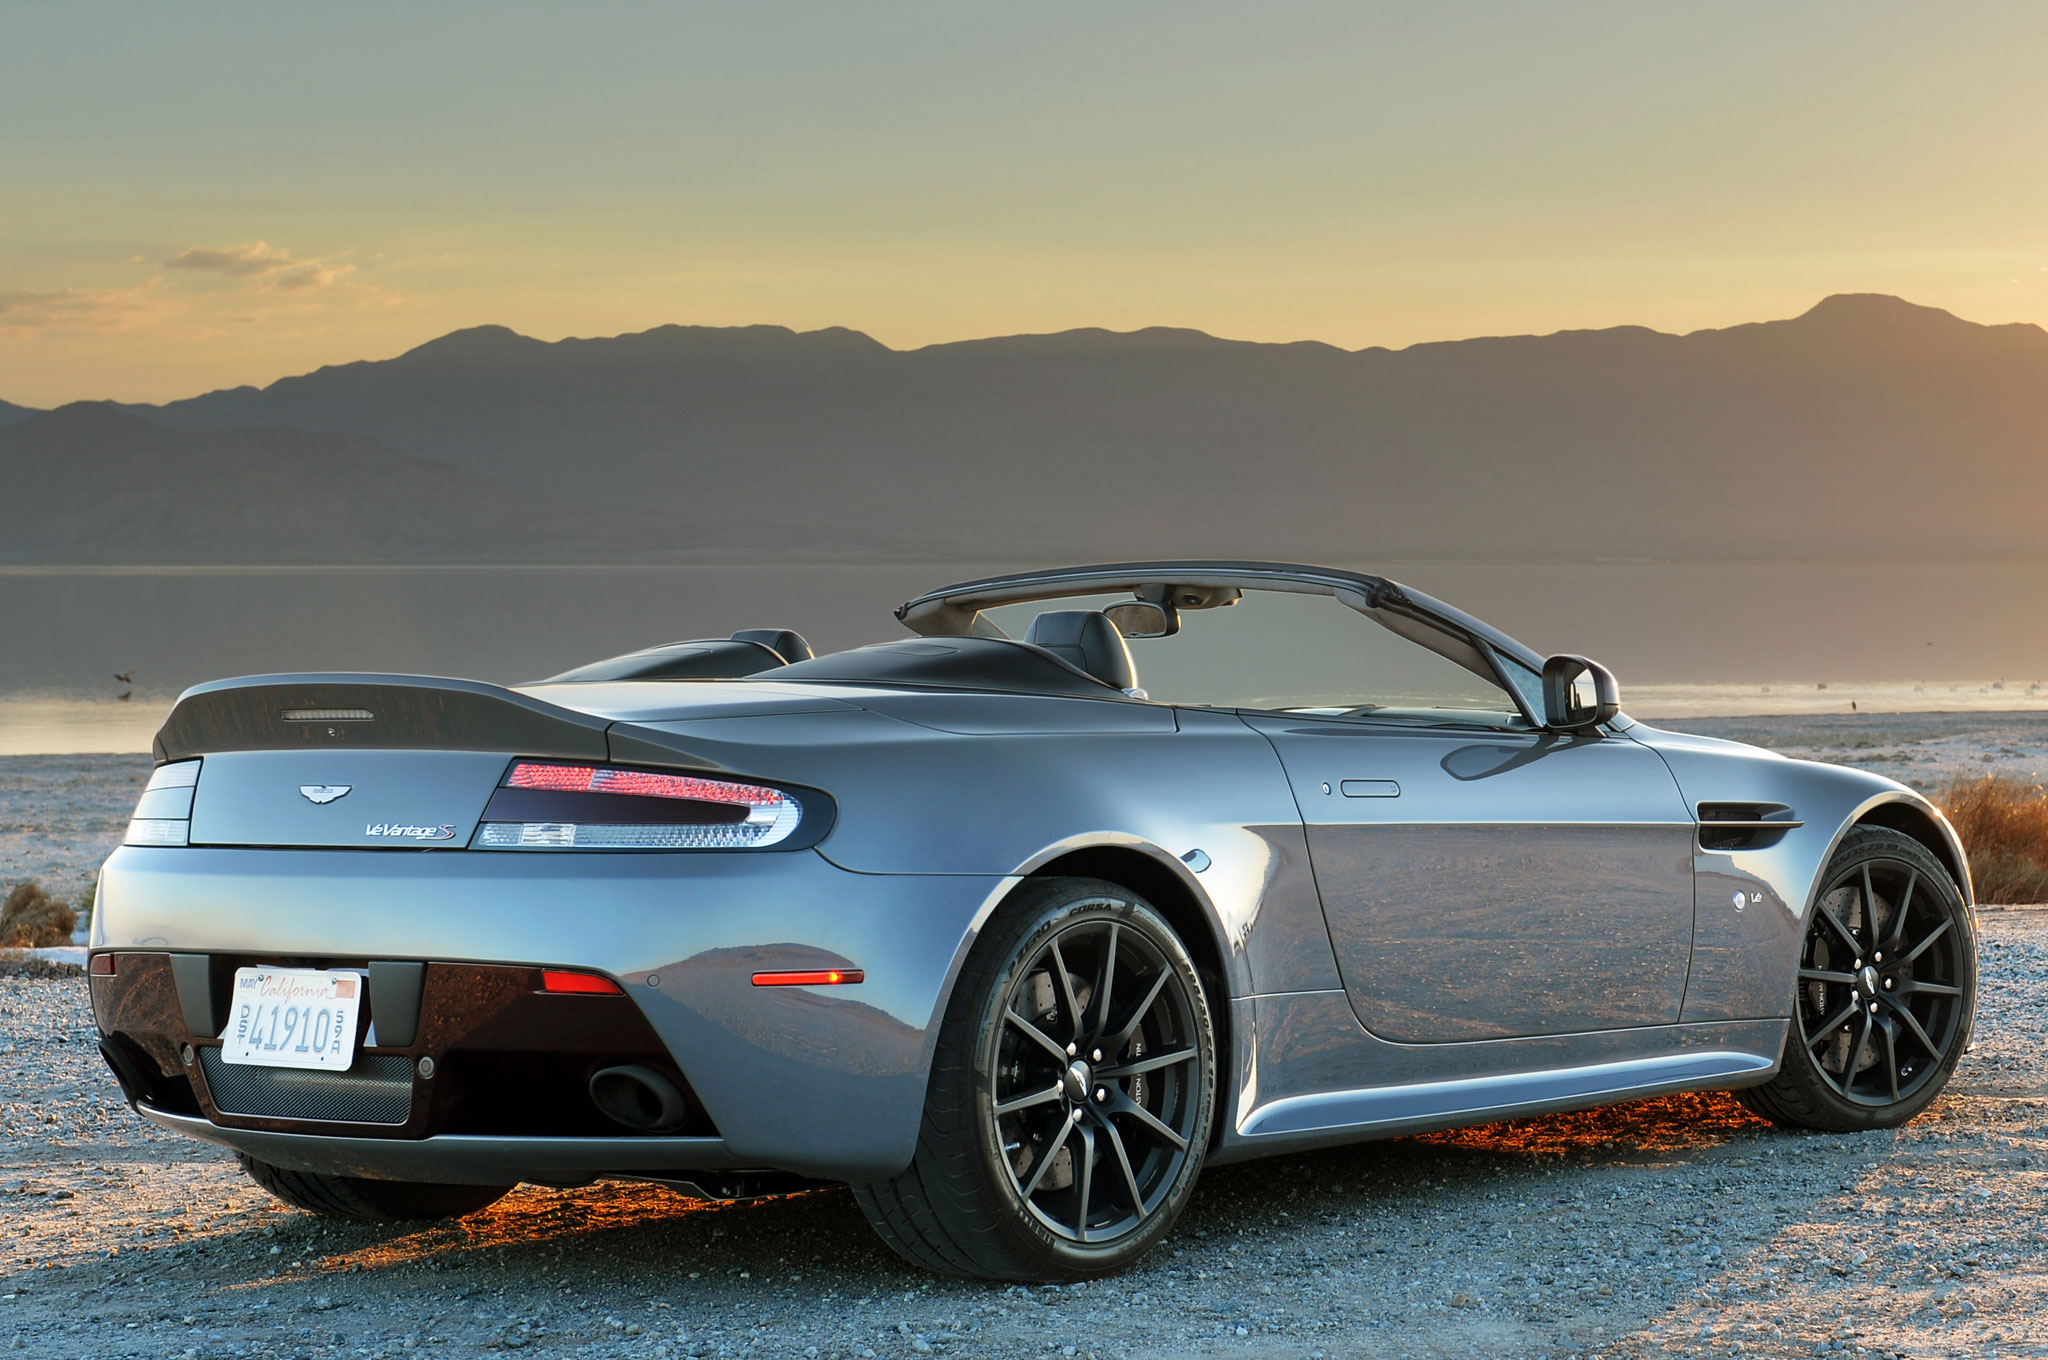 2015 aston martin v12 vantage s photos informations articles. Black Bedroom Furniture Sets. Home Design Ideas